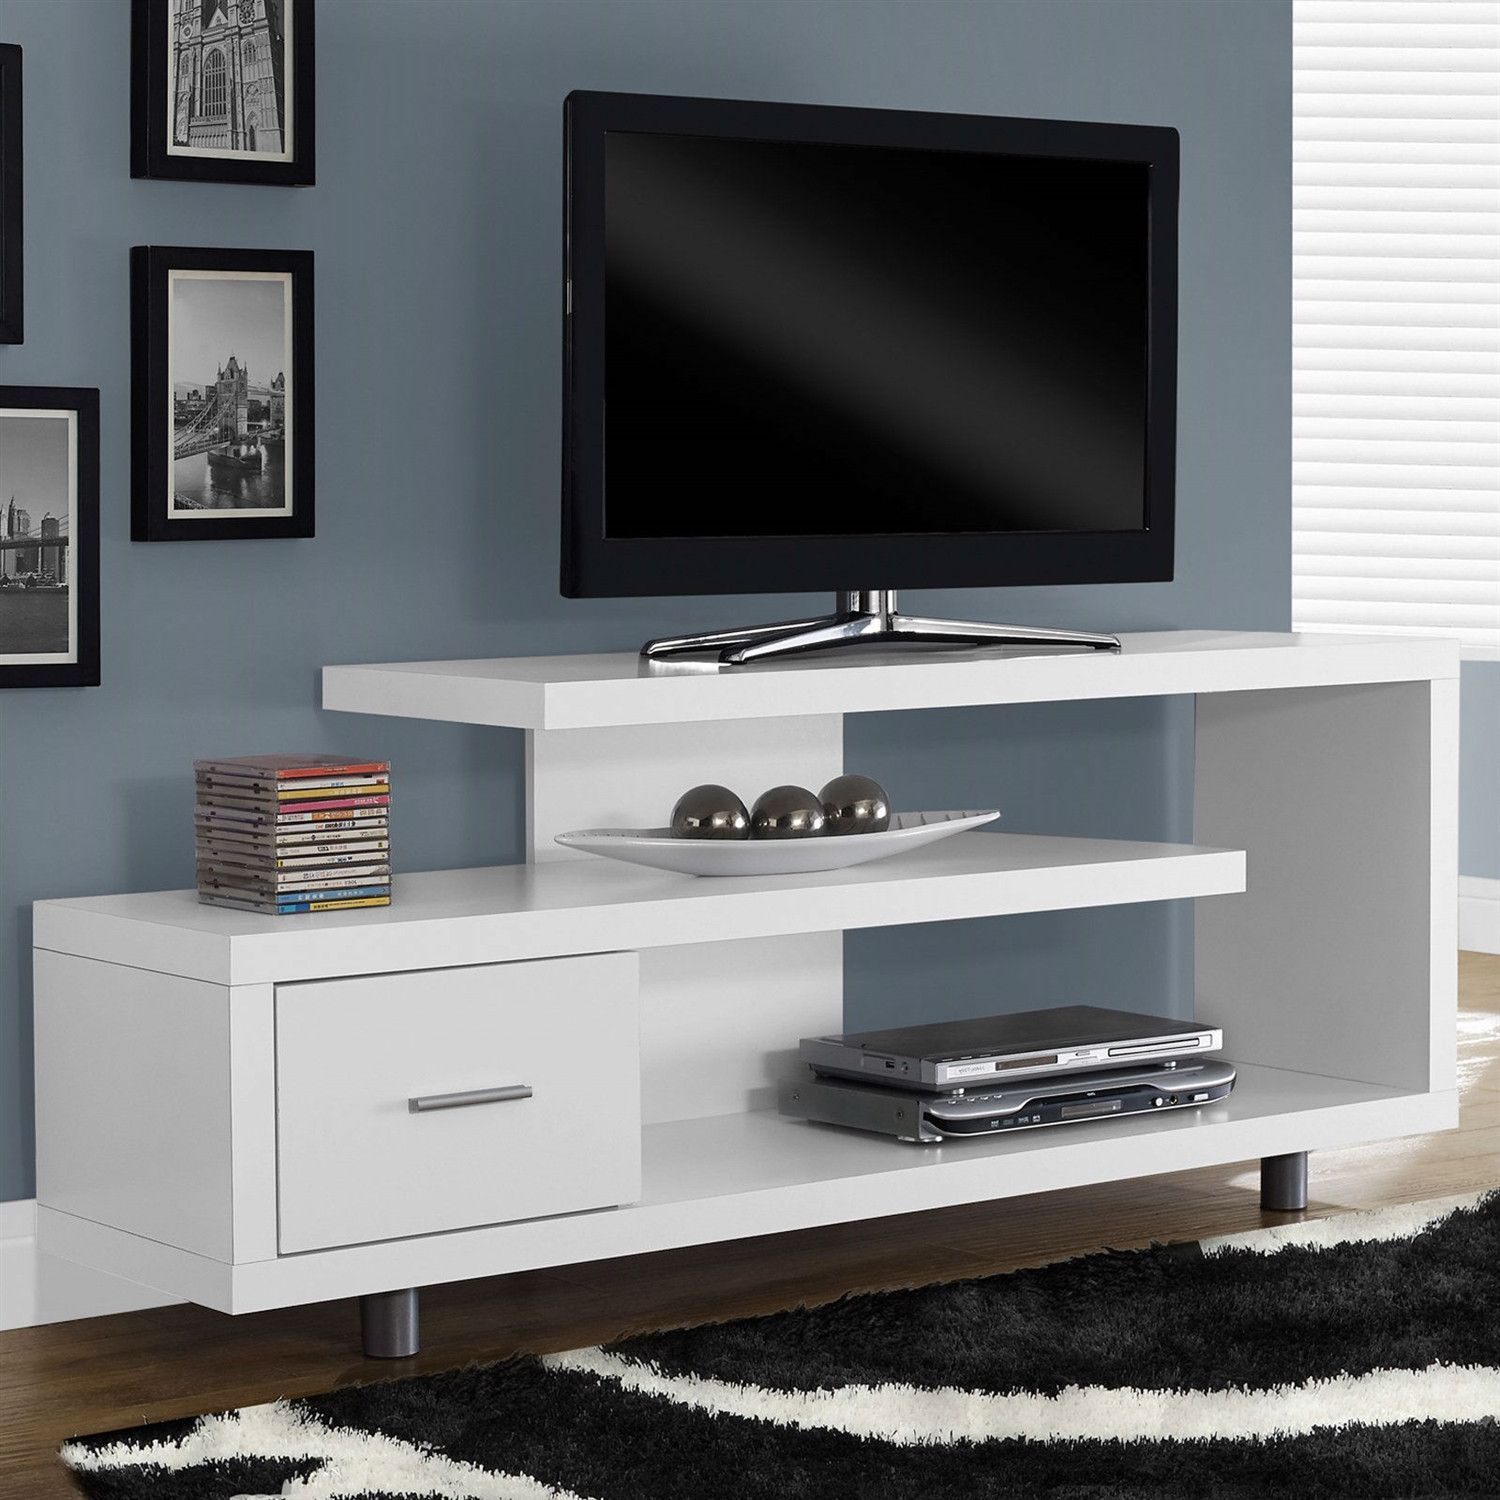 White Modern Tv Stand – Fits Up To 60 Inch Flat Screen Tv Throughout Marvin Rustic Natural 60 Inch Tv Stands (View 4 of 30)